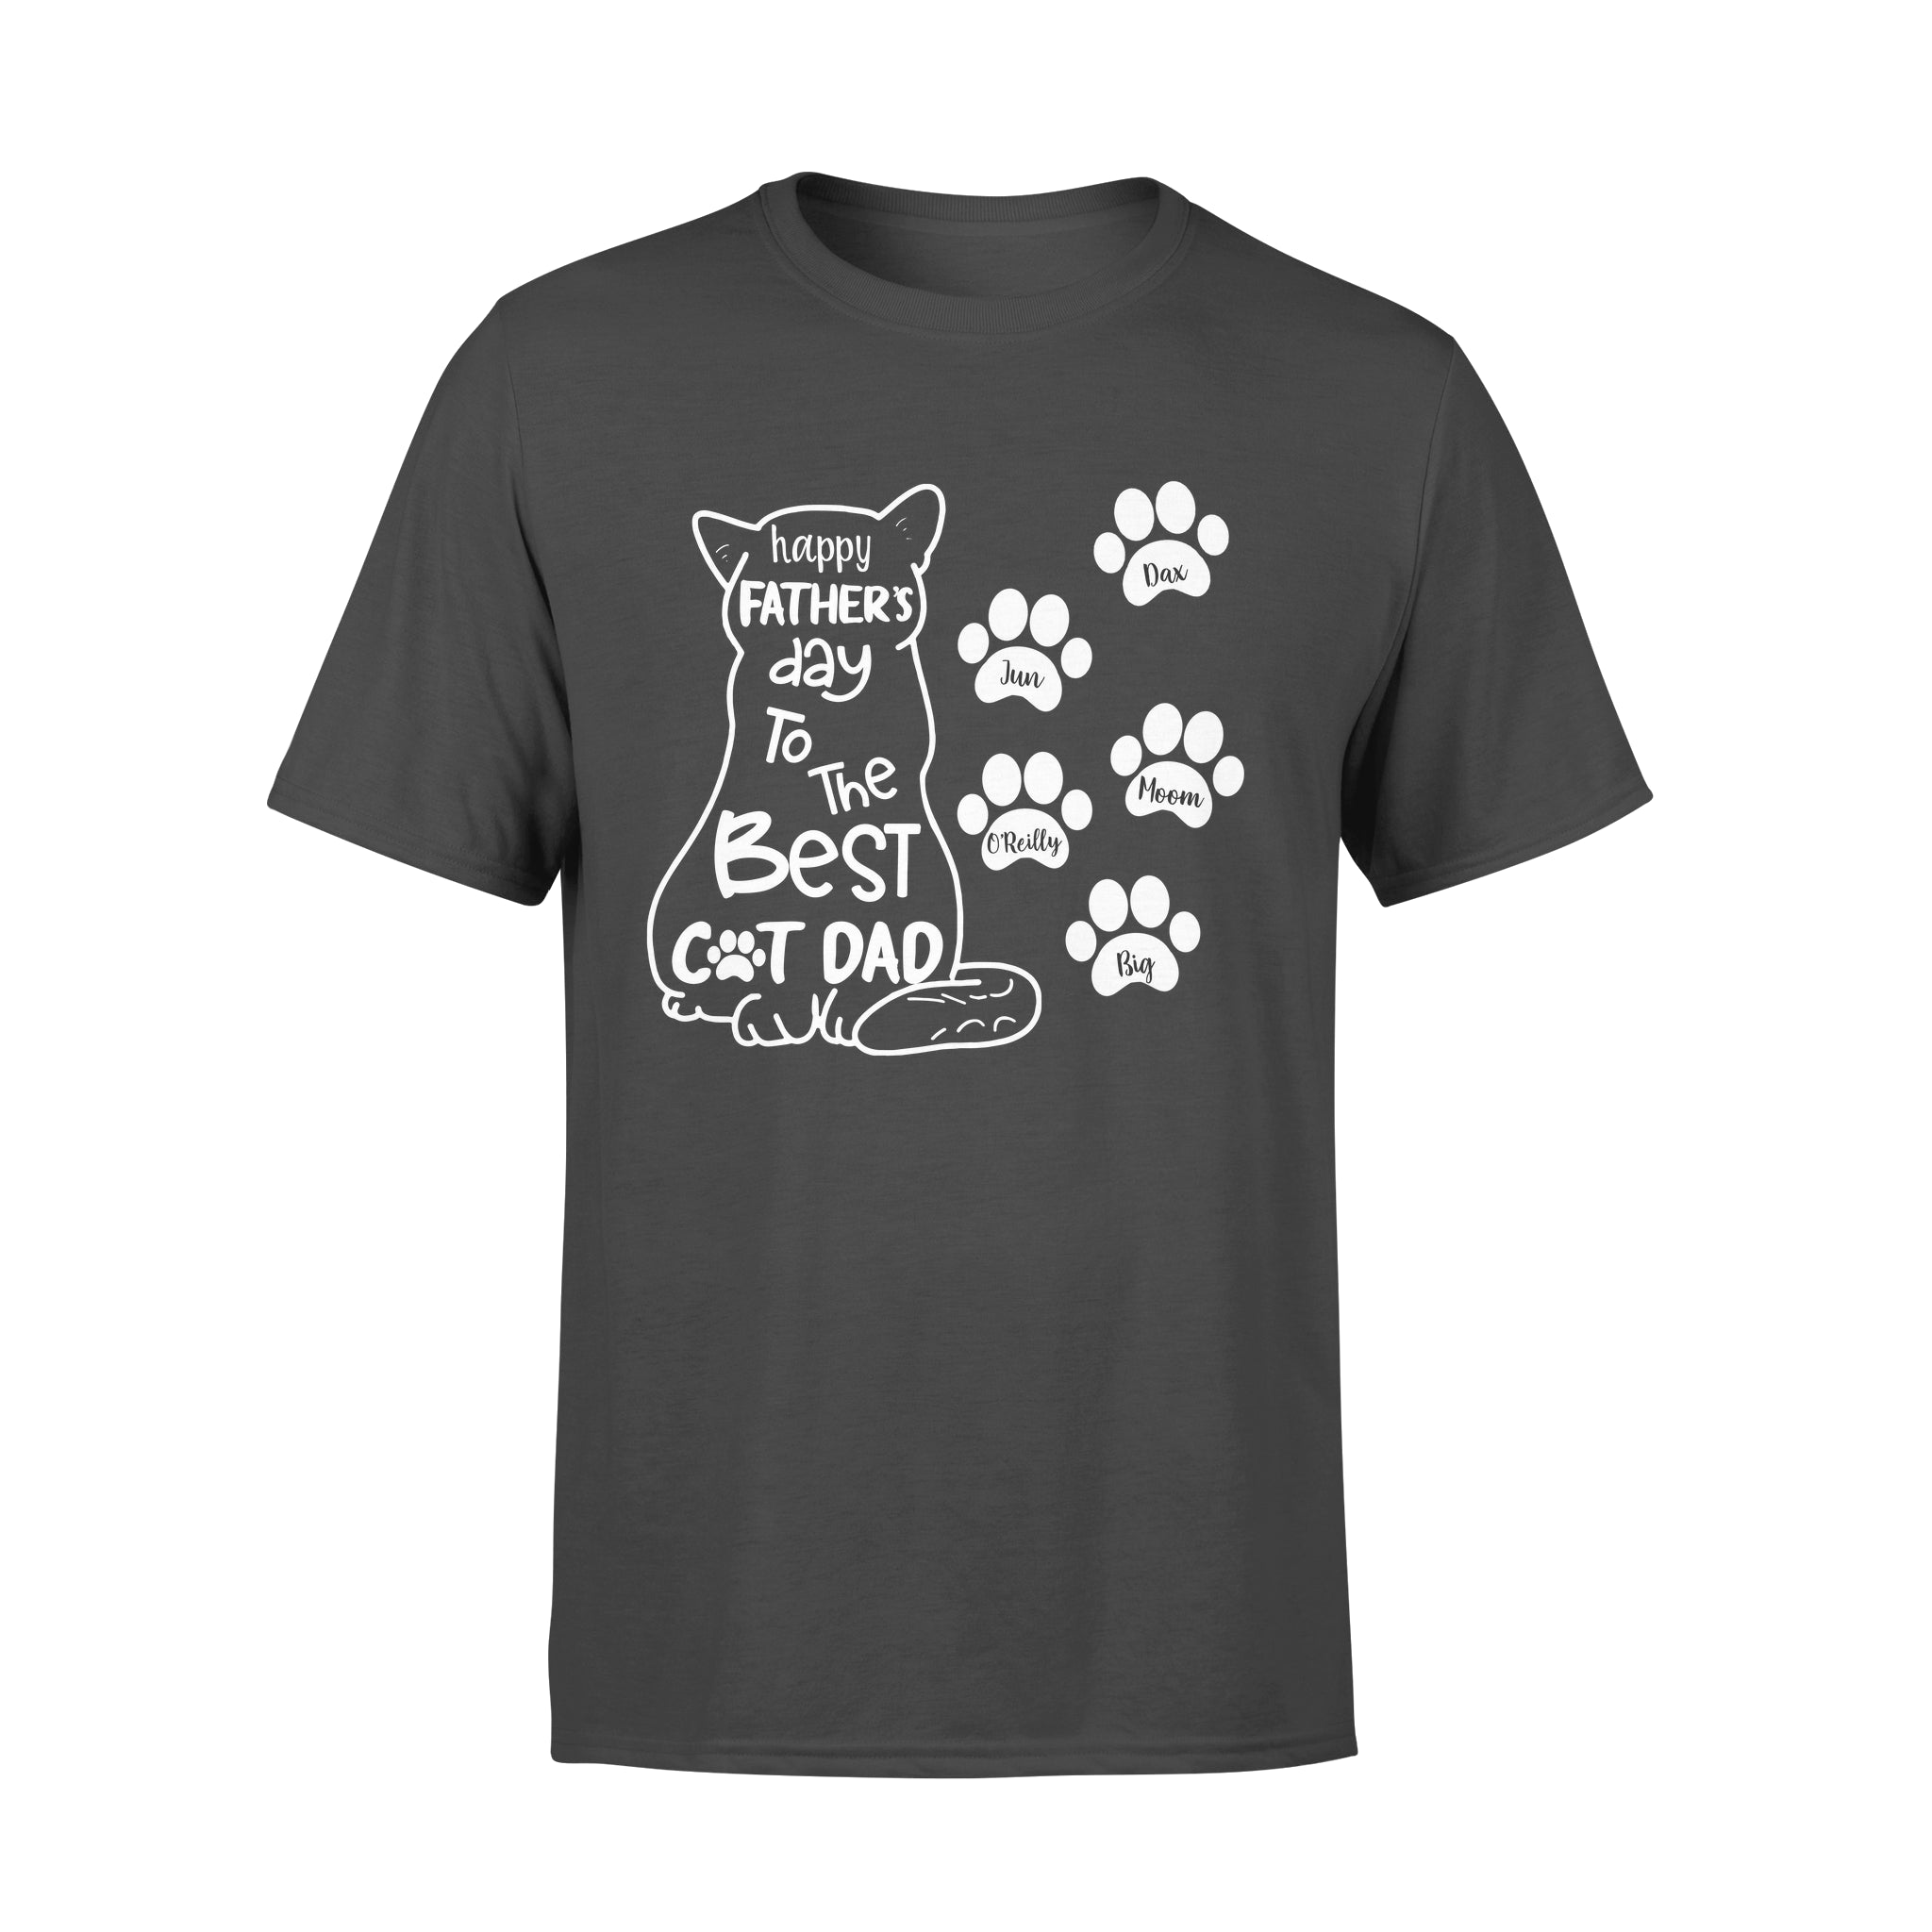 Custom Personalized Cat Dad T Shirts Gift for humans cat owners lovers - Happy Father's Day Best Cat Dad - PersonalizedWitch